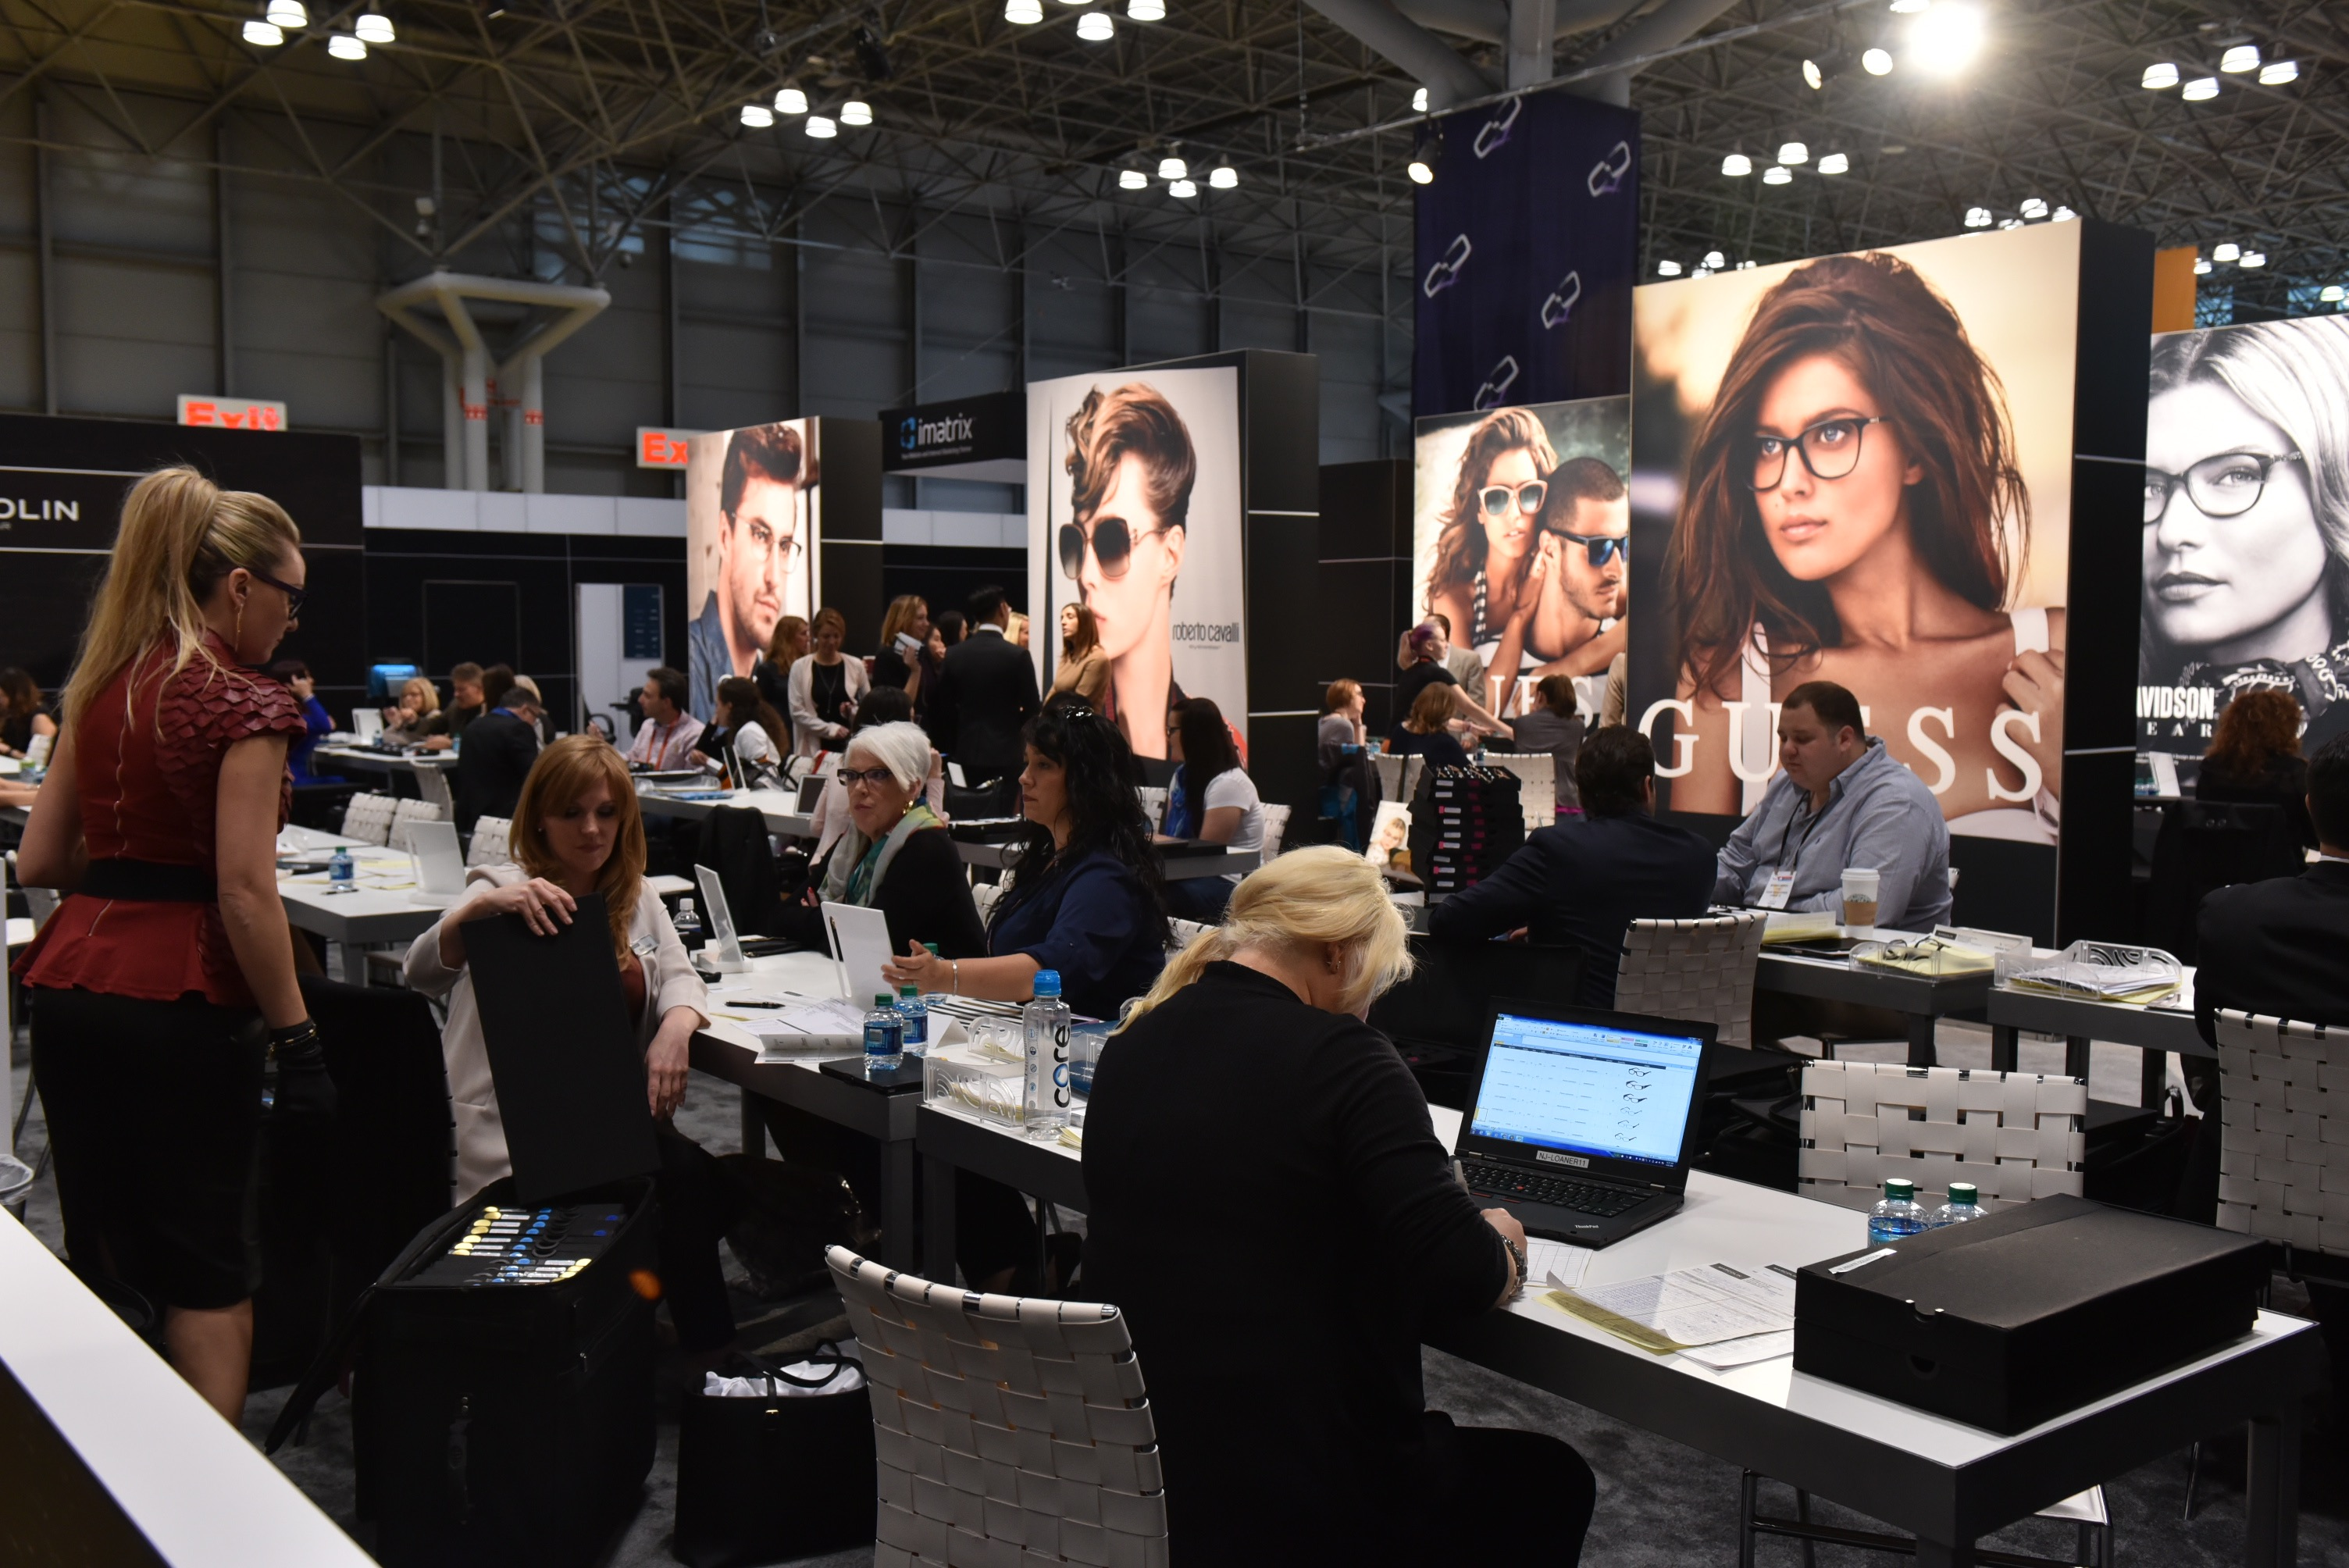 100 new fashion eyewear brands to debut at Vision Expo West